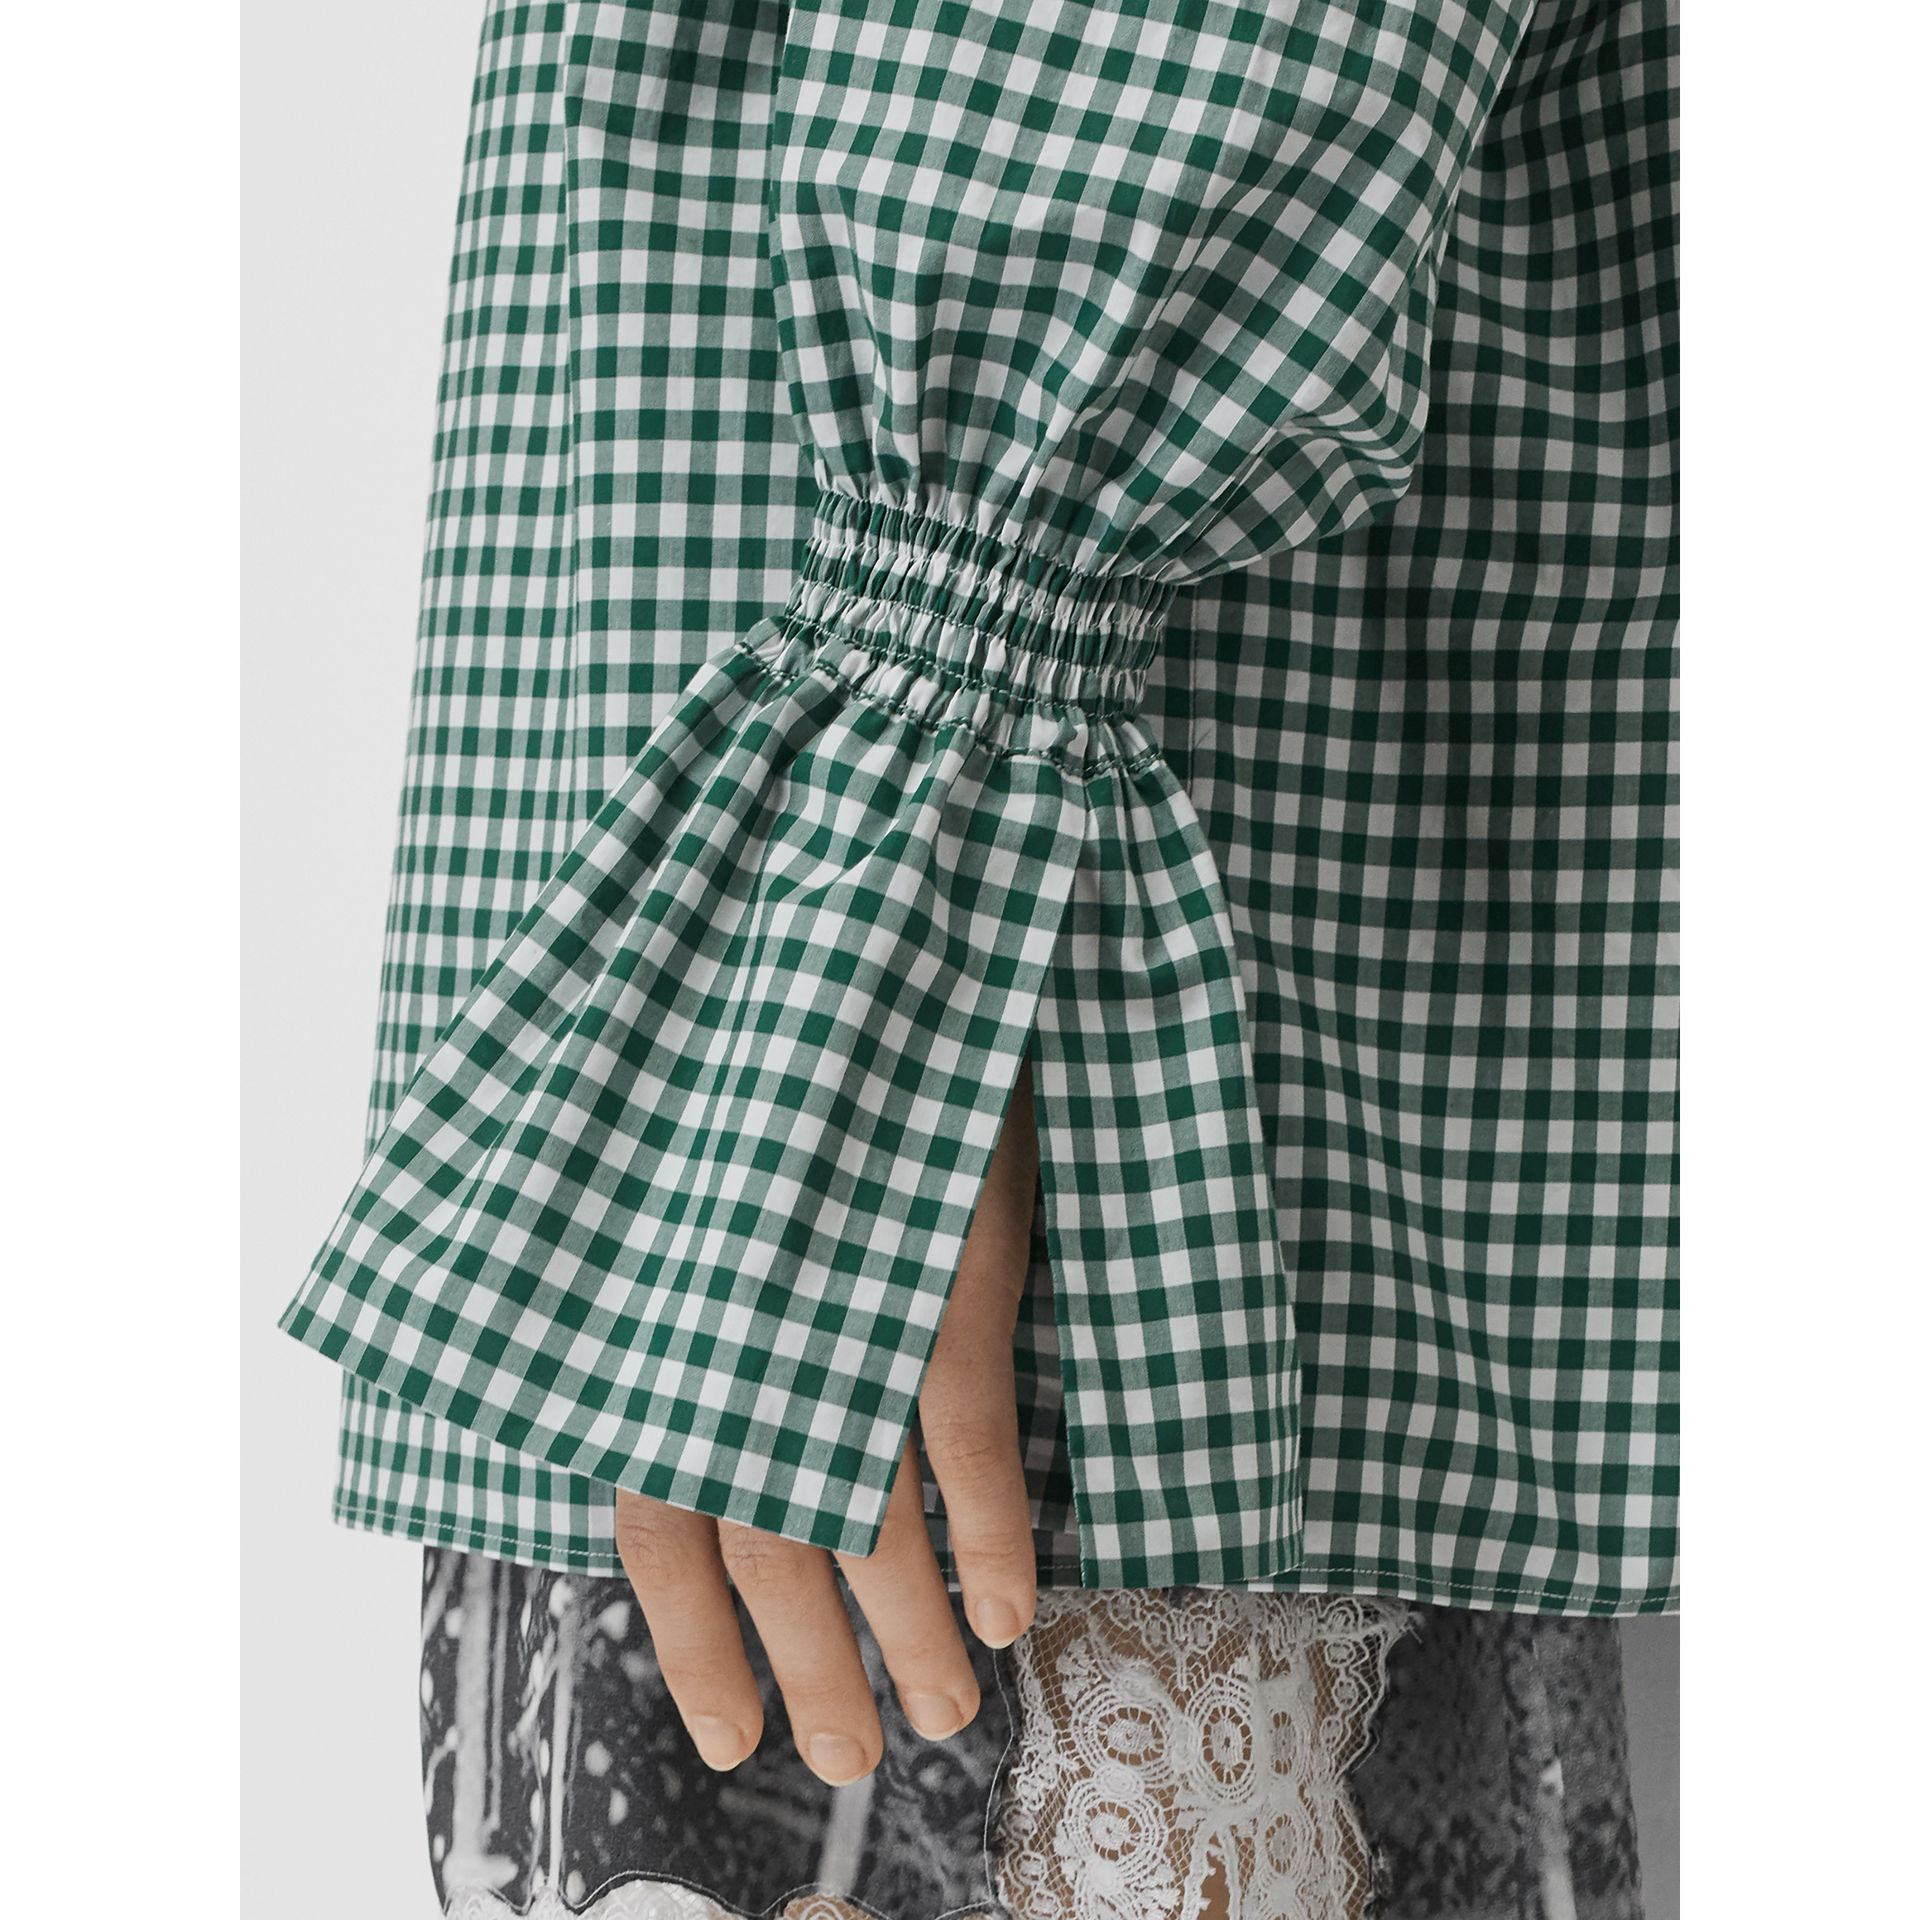 Puff-sleeve Gingham Cotton Shirt in White/green - Women | Burberry - gallery image 1